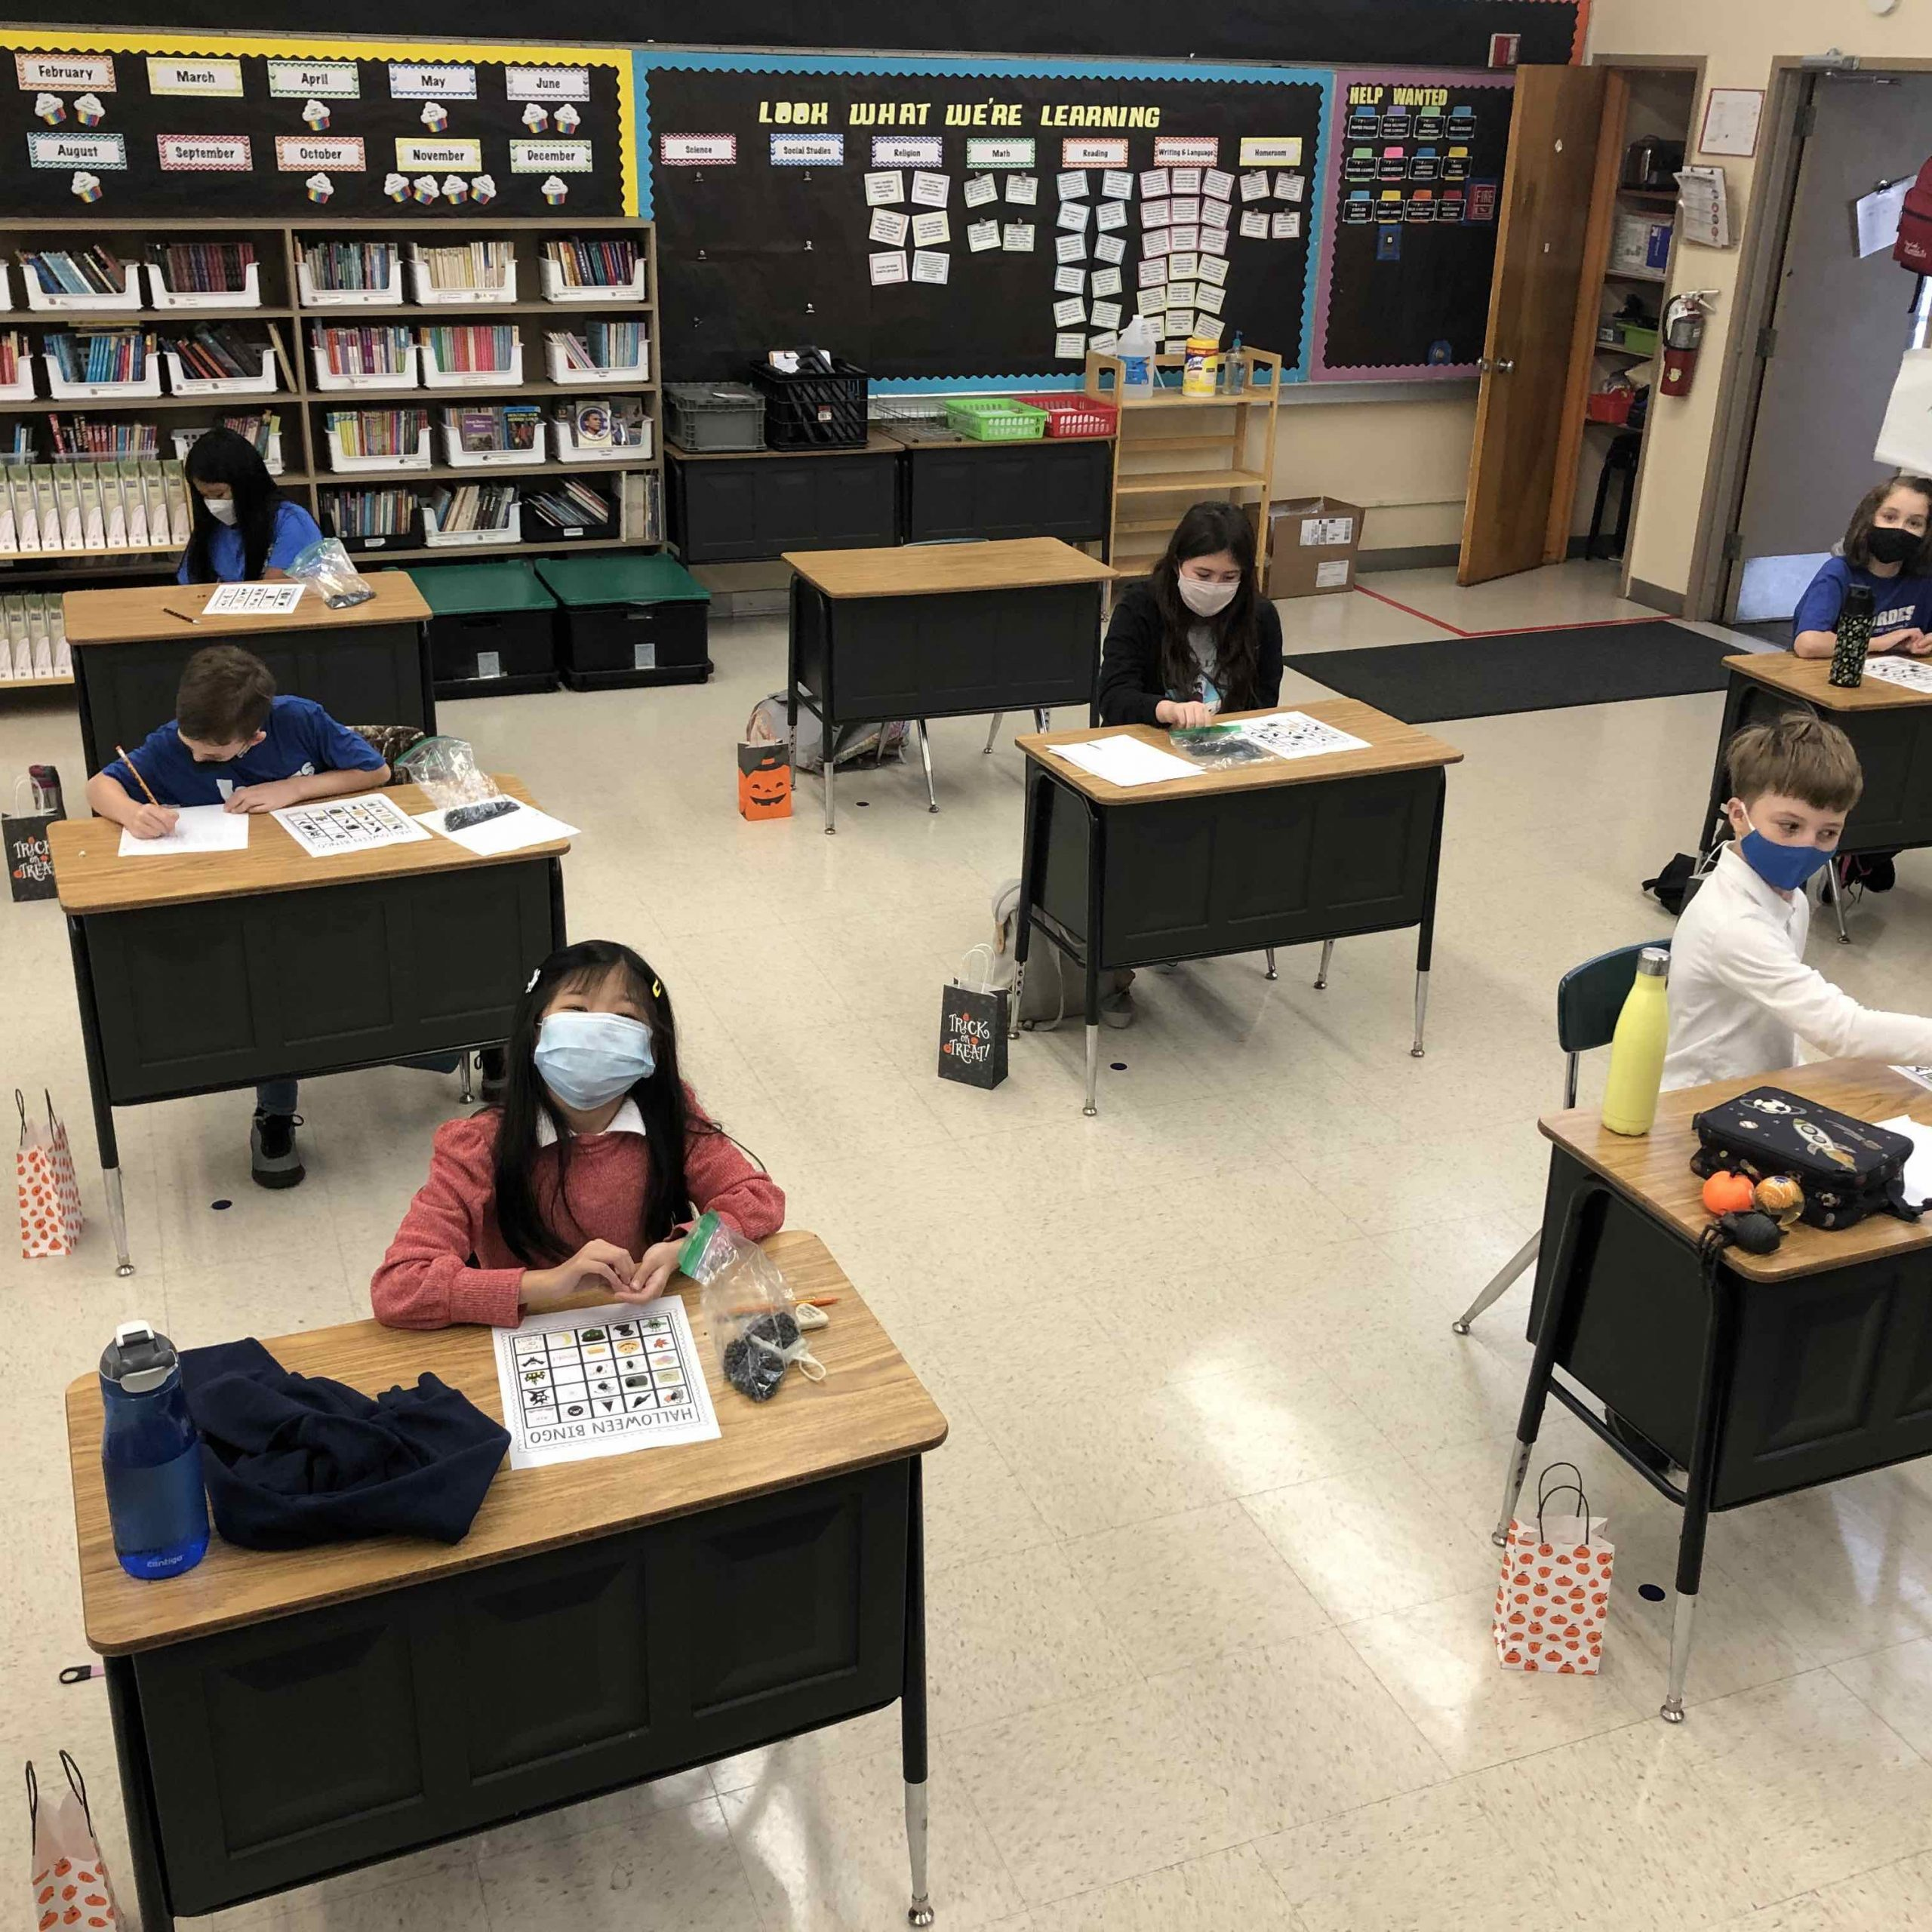 4th grade classroom scene at Our Lady of Lourdes Catholic School